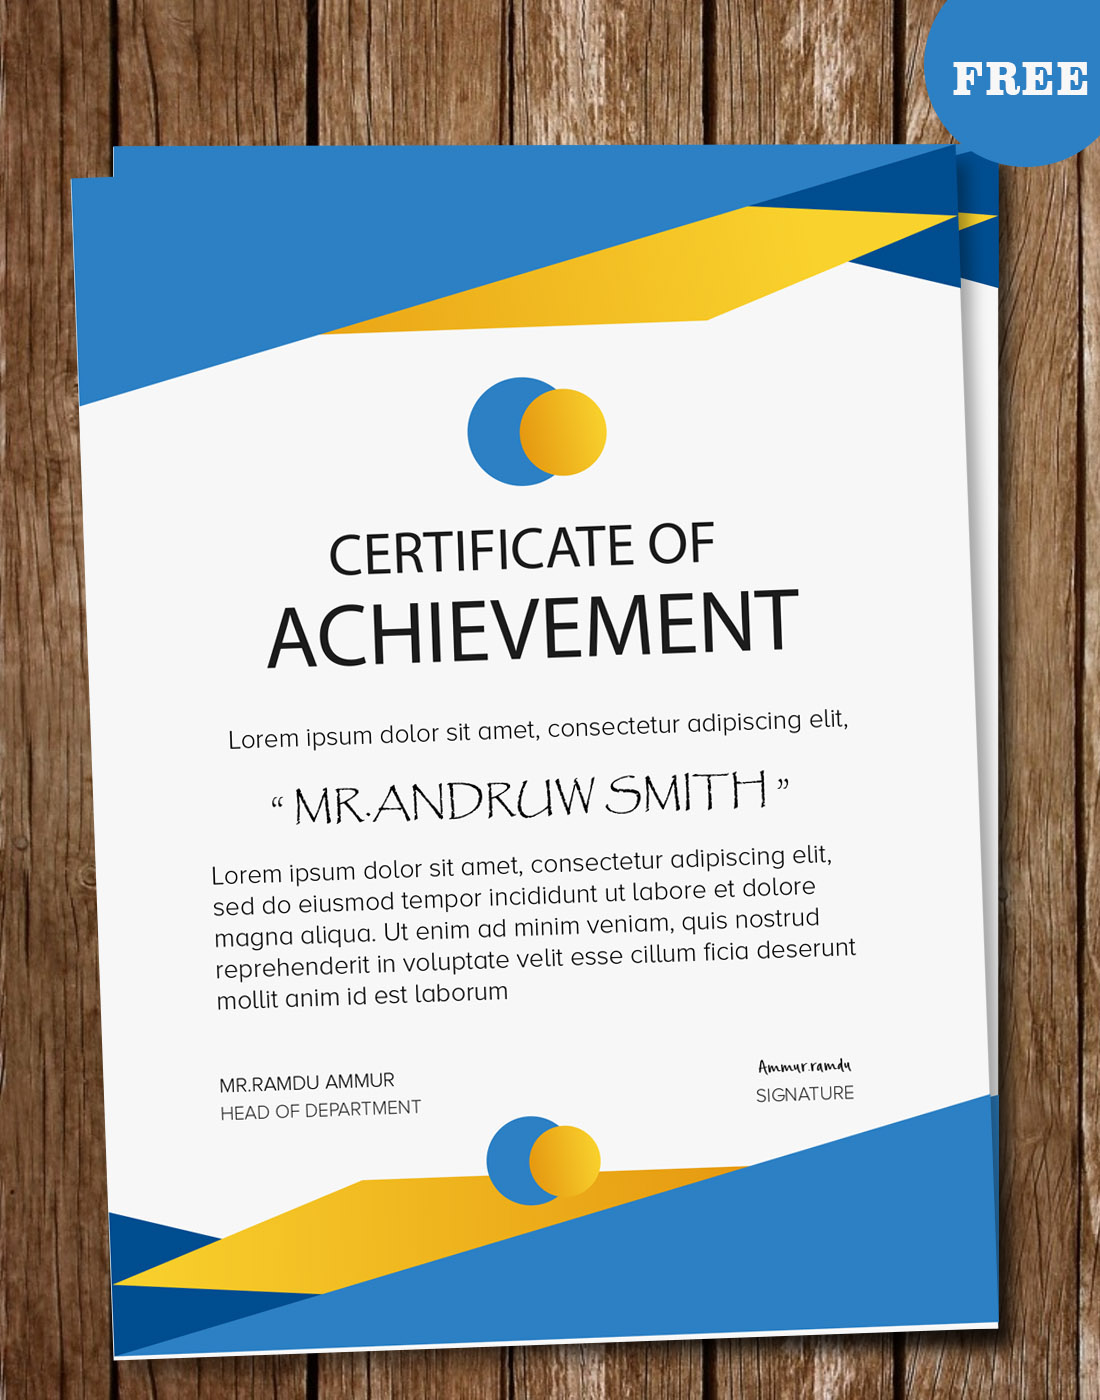 Certificate Psd Templates On Behance